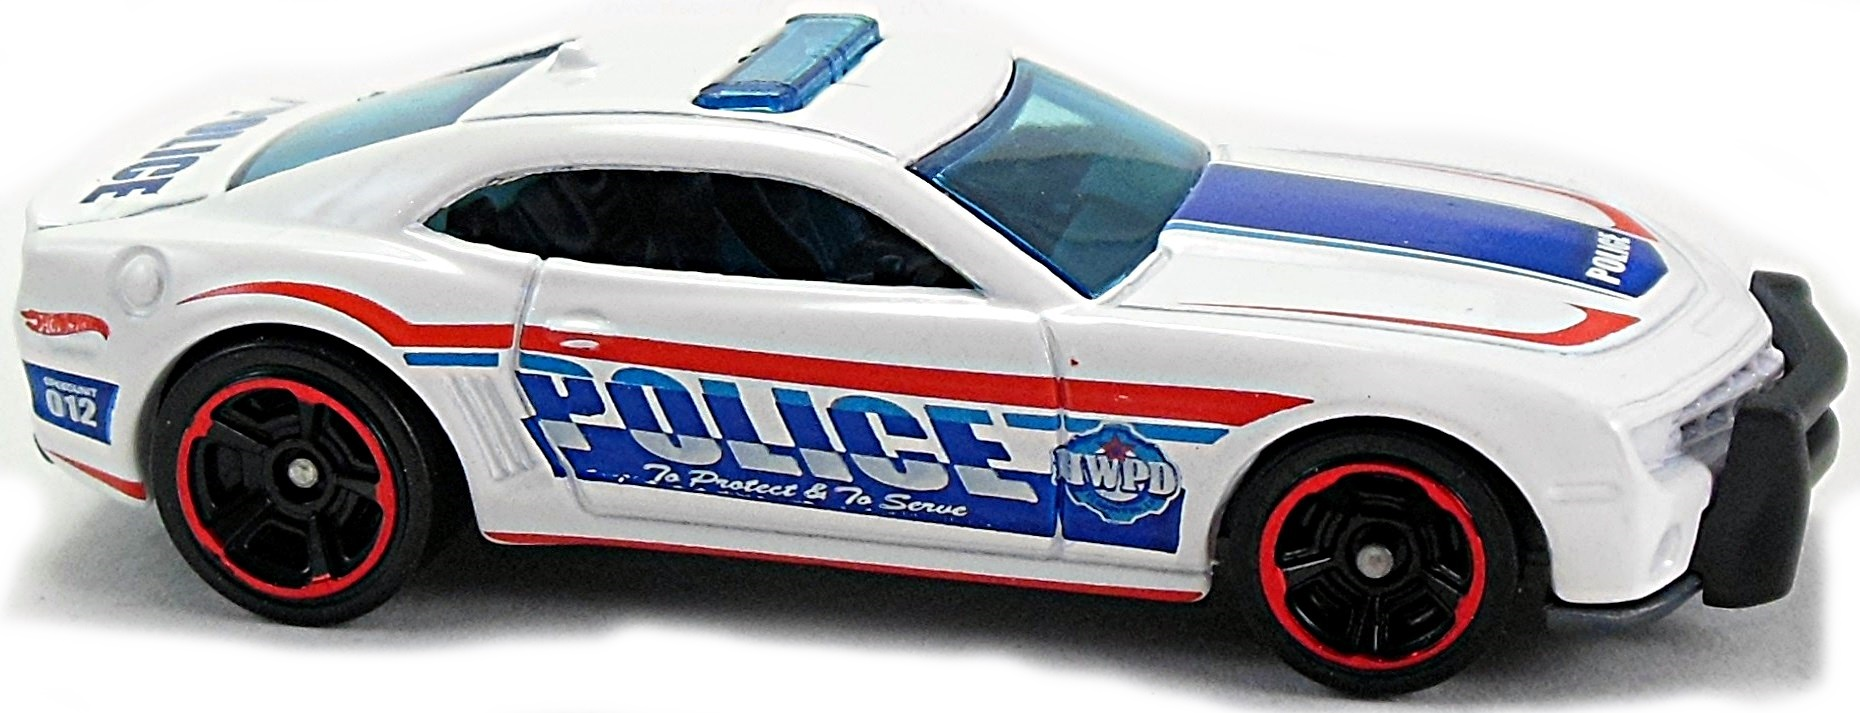 10 camaro ss police car 70mm 2010 hot wheels newsletter a mf dk blue gray base and push bar silver int blue windows and light bar blue white silver and red police design on sides pr5gd aloadofball Image collections